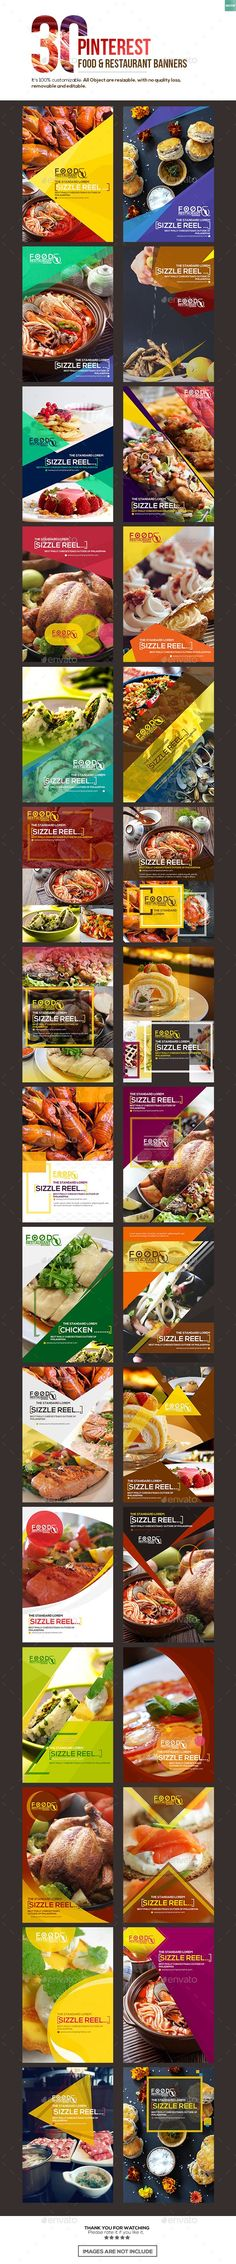 30 Pinterest Food & Restaurant Banners                                                                                                                                                                                 More